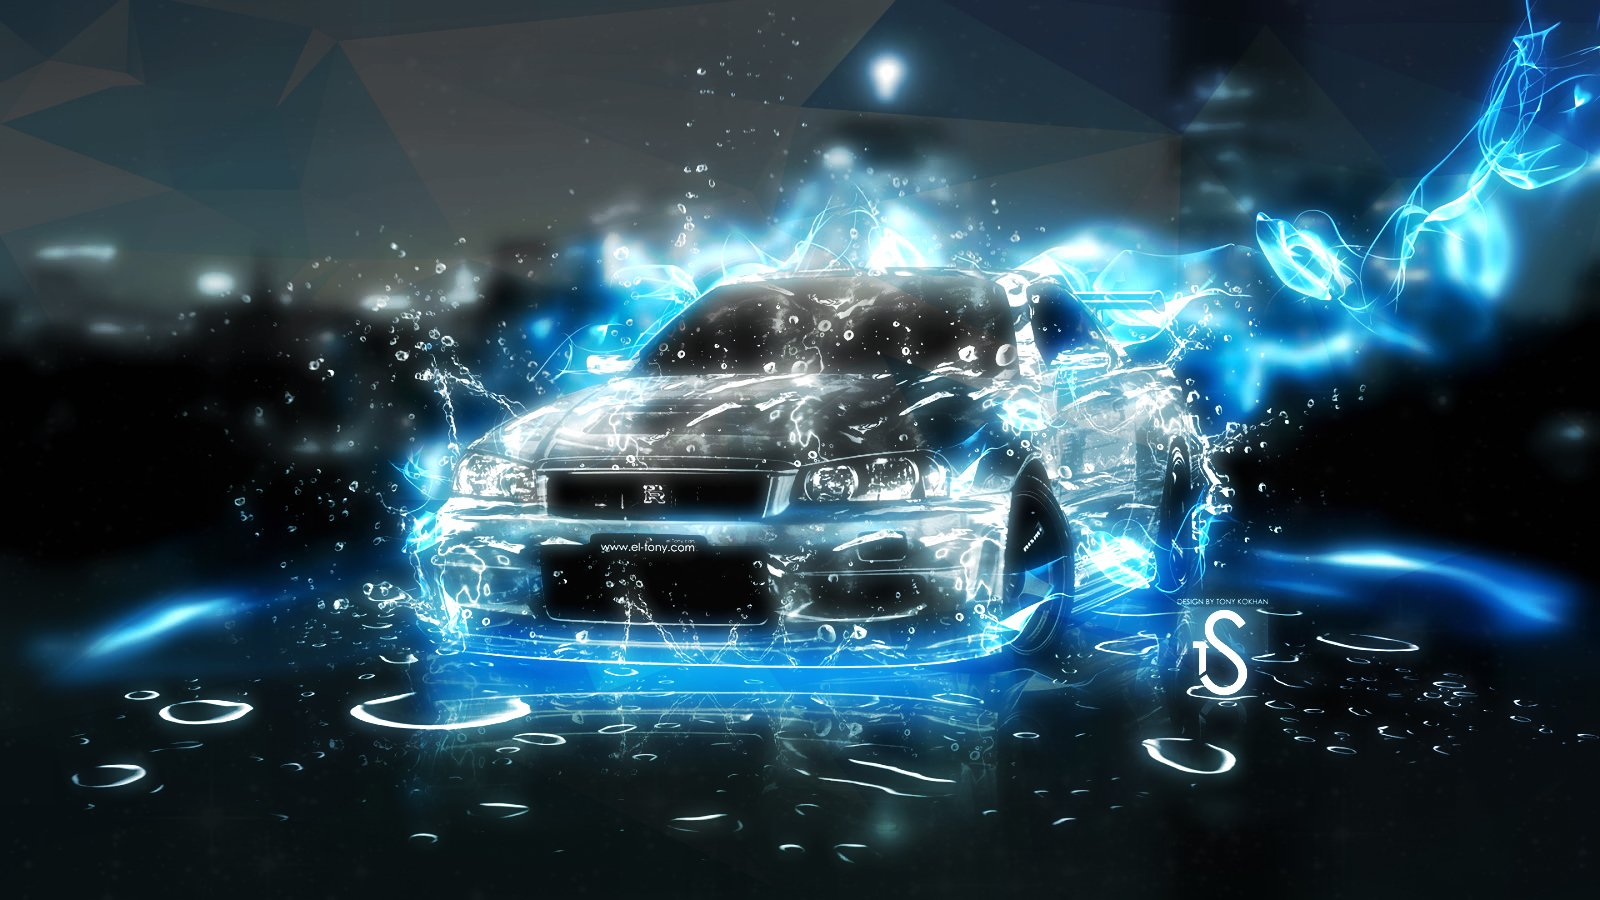 Amazing Car Wallpapers For Desktop Nissa Skyline R34 Gtr Nissan Skyline The Dream Cars Of Anyone Who Has Watched